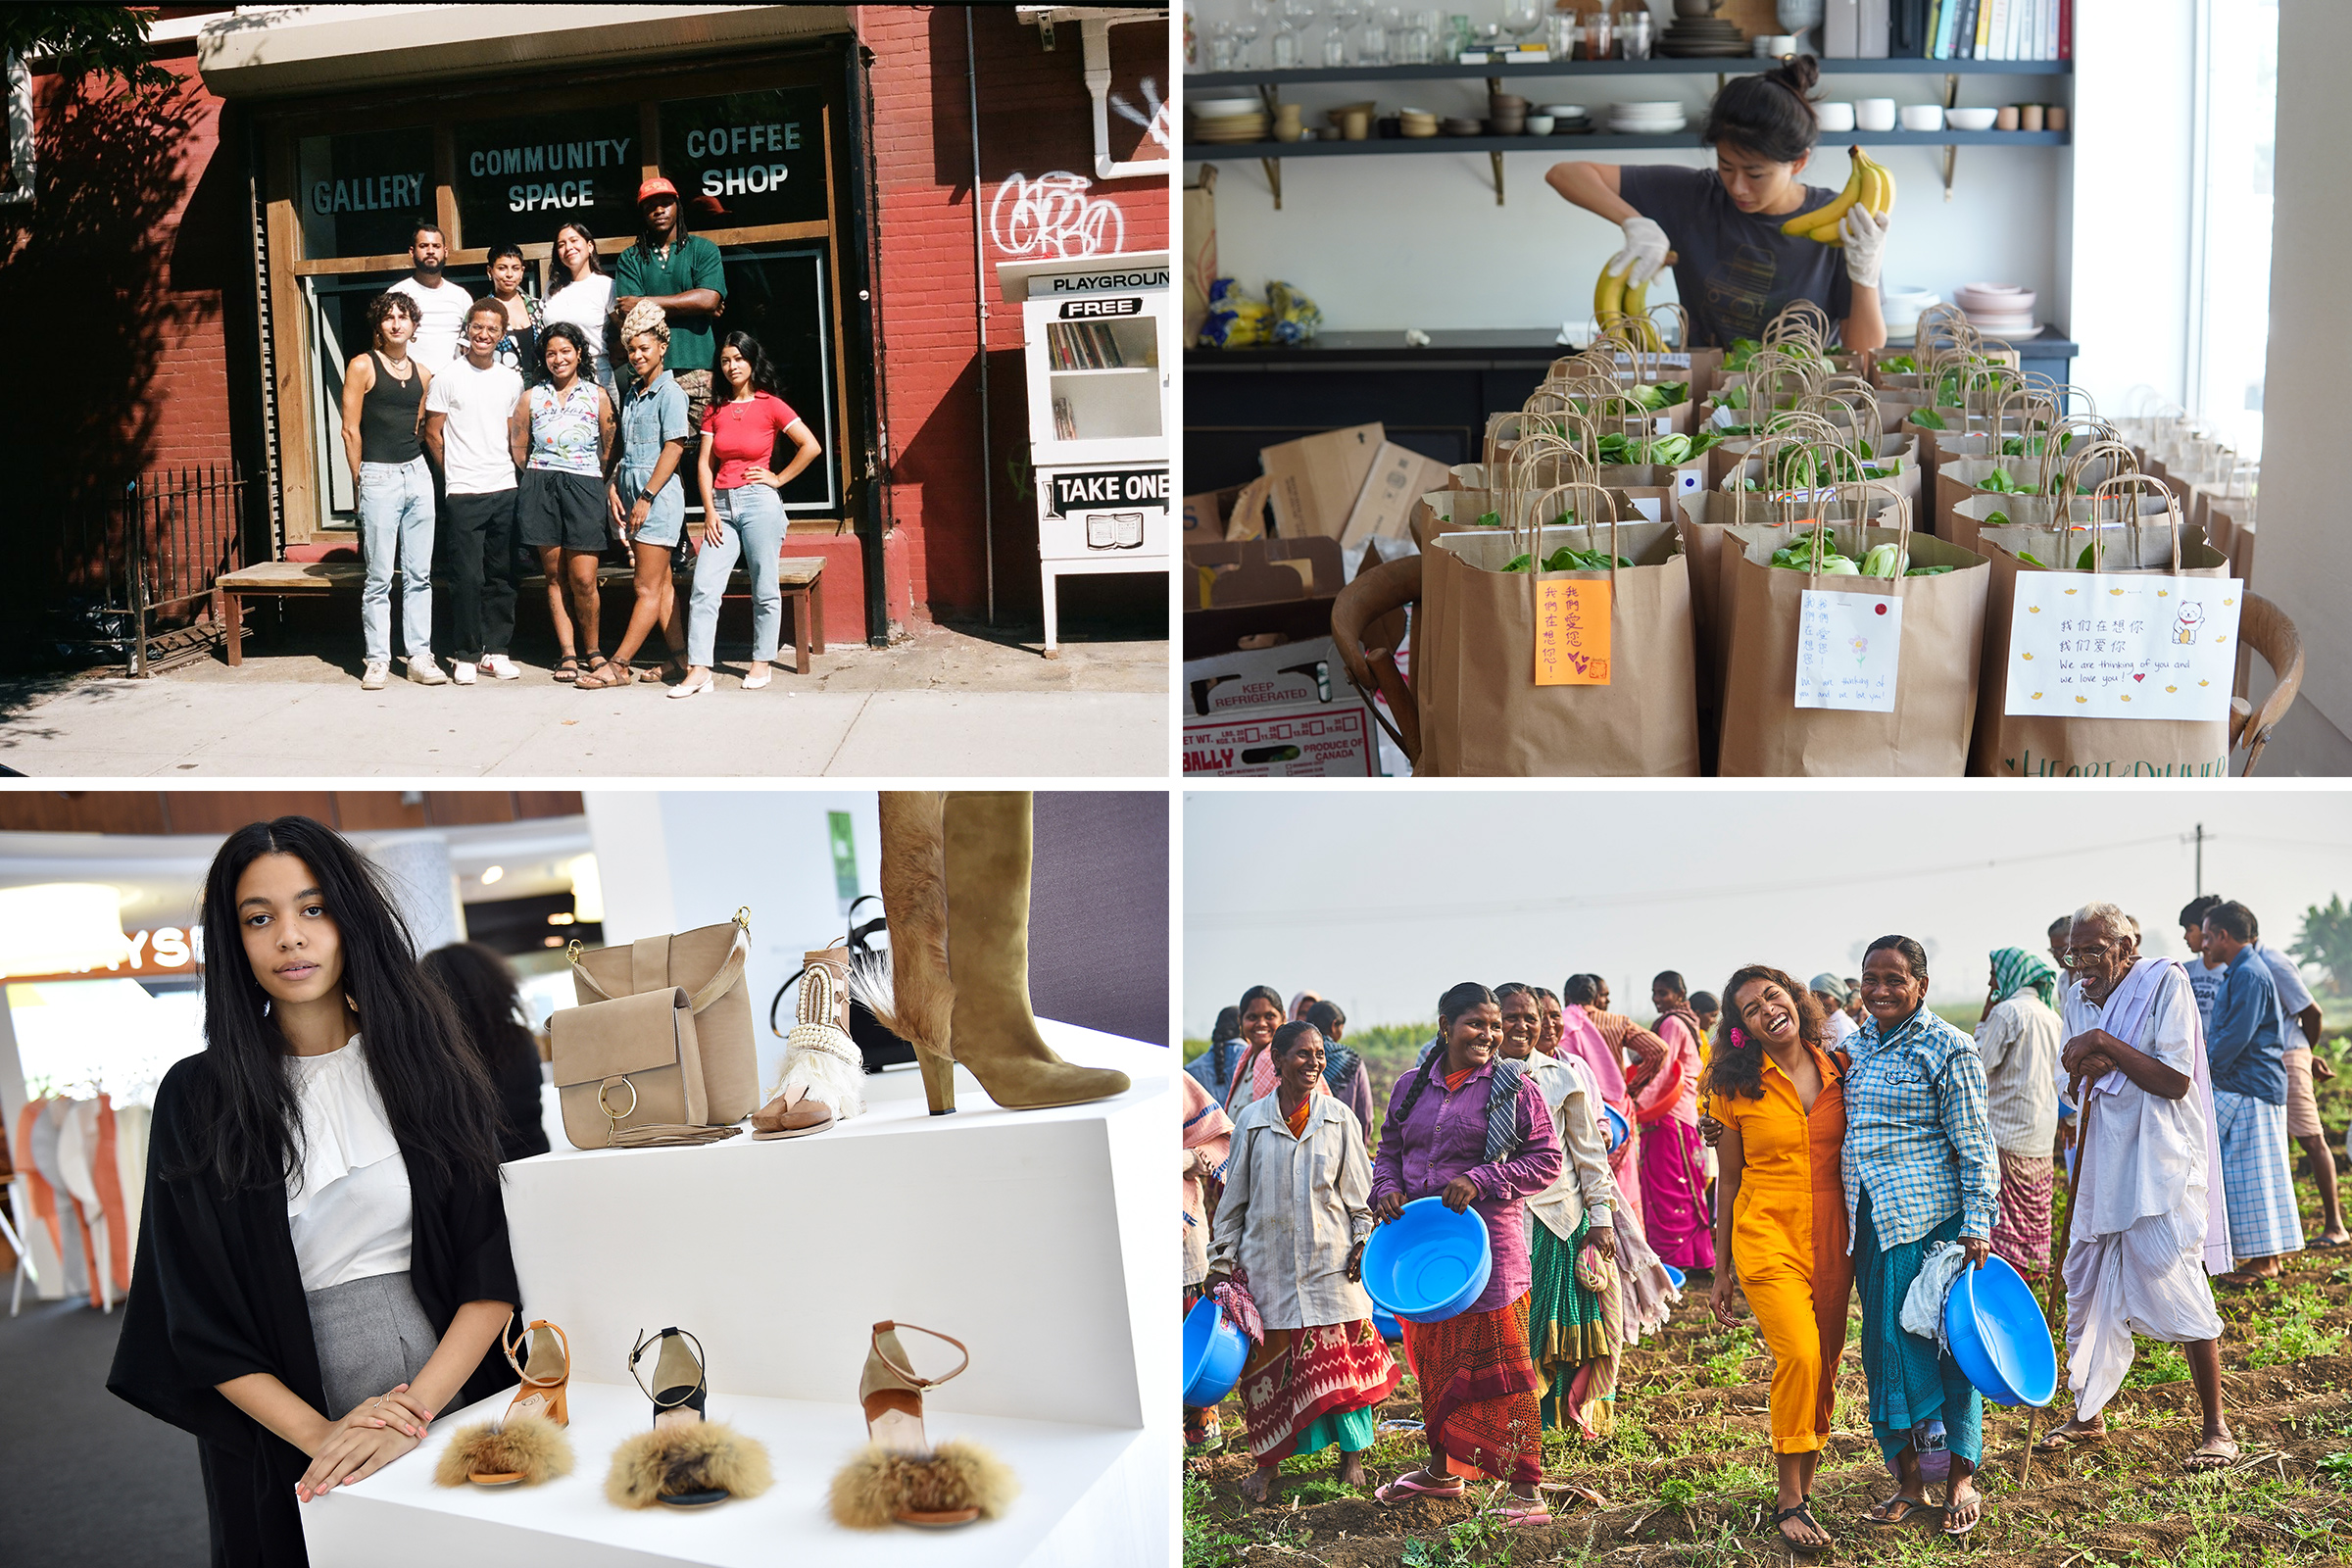 Top row from left: Playground Coffee Shop owner Zenat Begum, bottom center, and her staff have prioritized aid for their community during the pandemic; Heart of Dinner co-founder Yin Chang prepares care packages for delivery to the elderly; Bottom row from left: Brother Vellies founder Aurora James created the 15% Pledge to level the playing field for Black-owned businesses; Diaspora Co. founder Sana Javeri Kadri, in orange, with farmworkers who harvest spices for her company in India